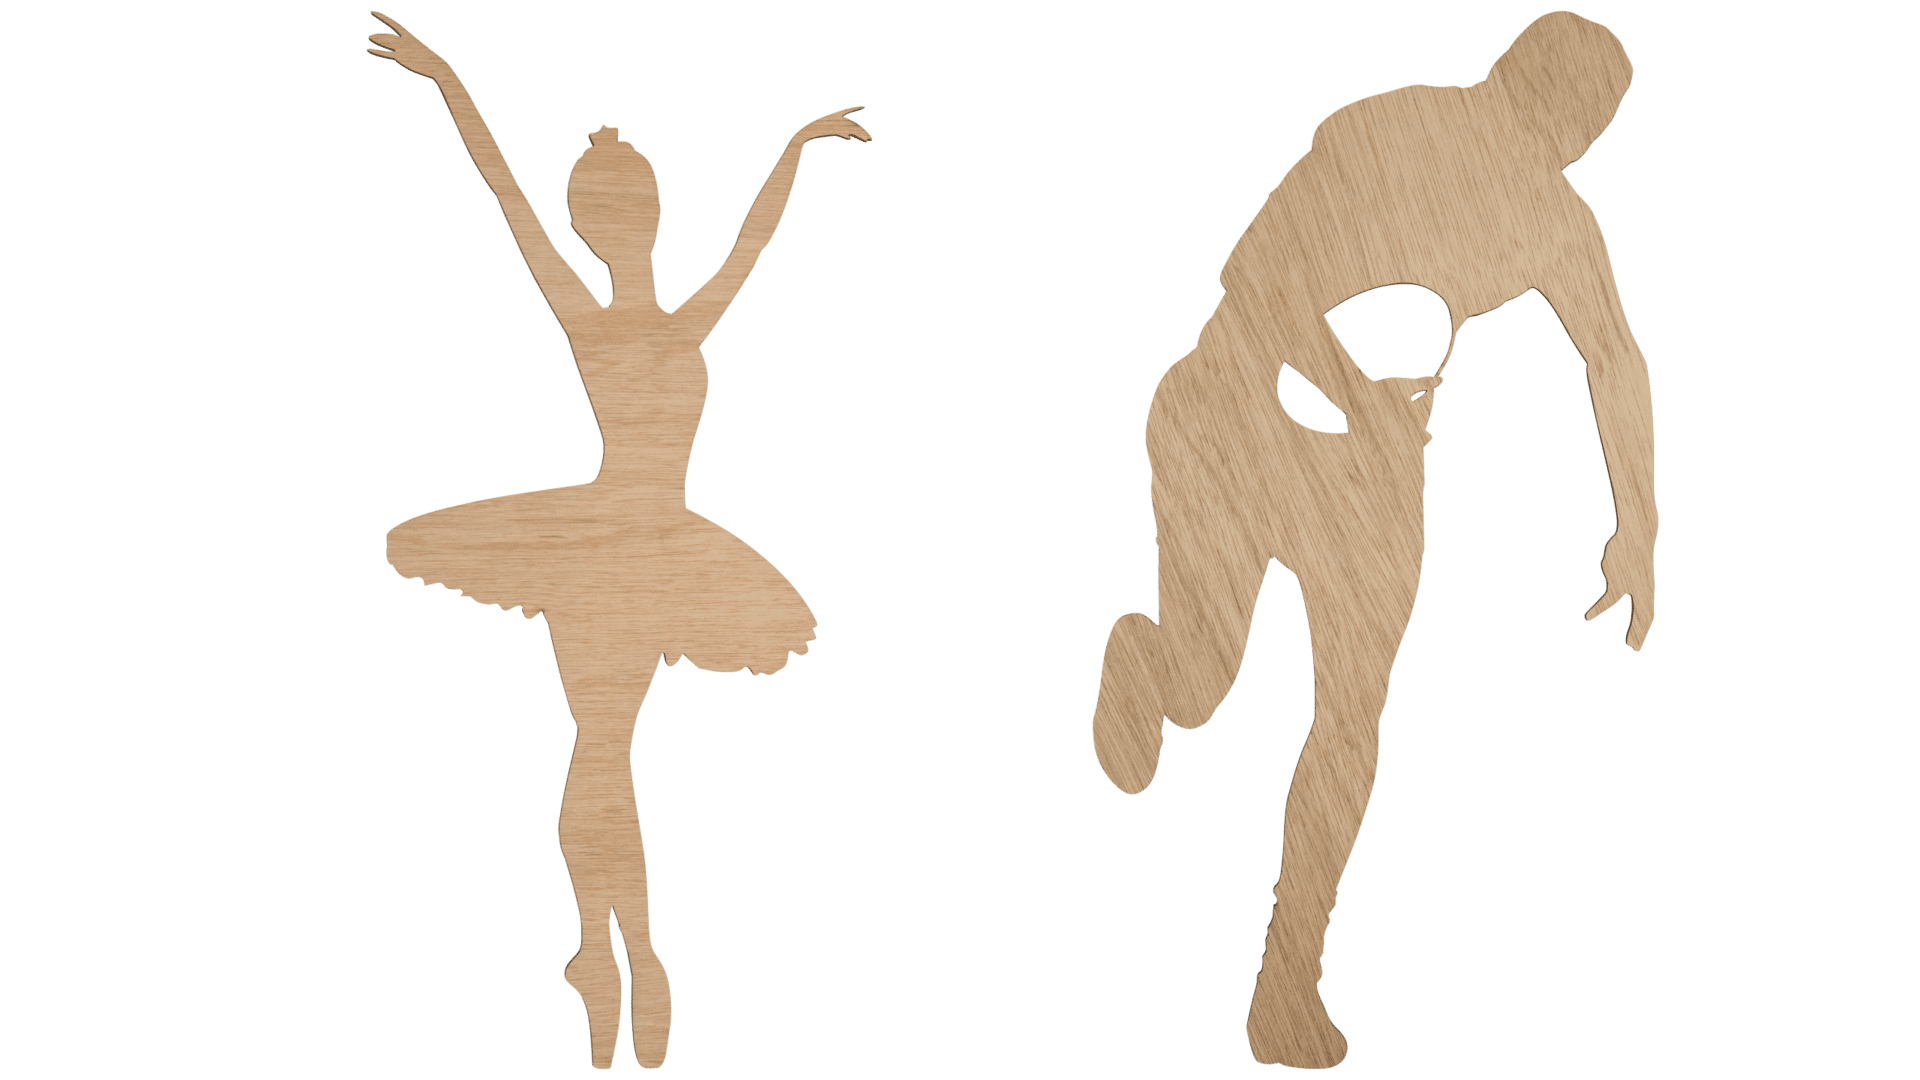 Ballerina and rugby player